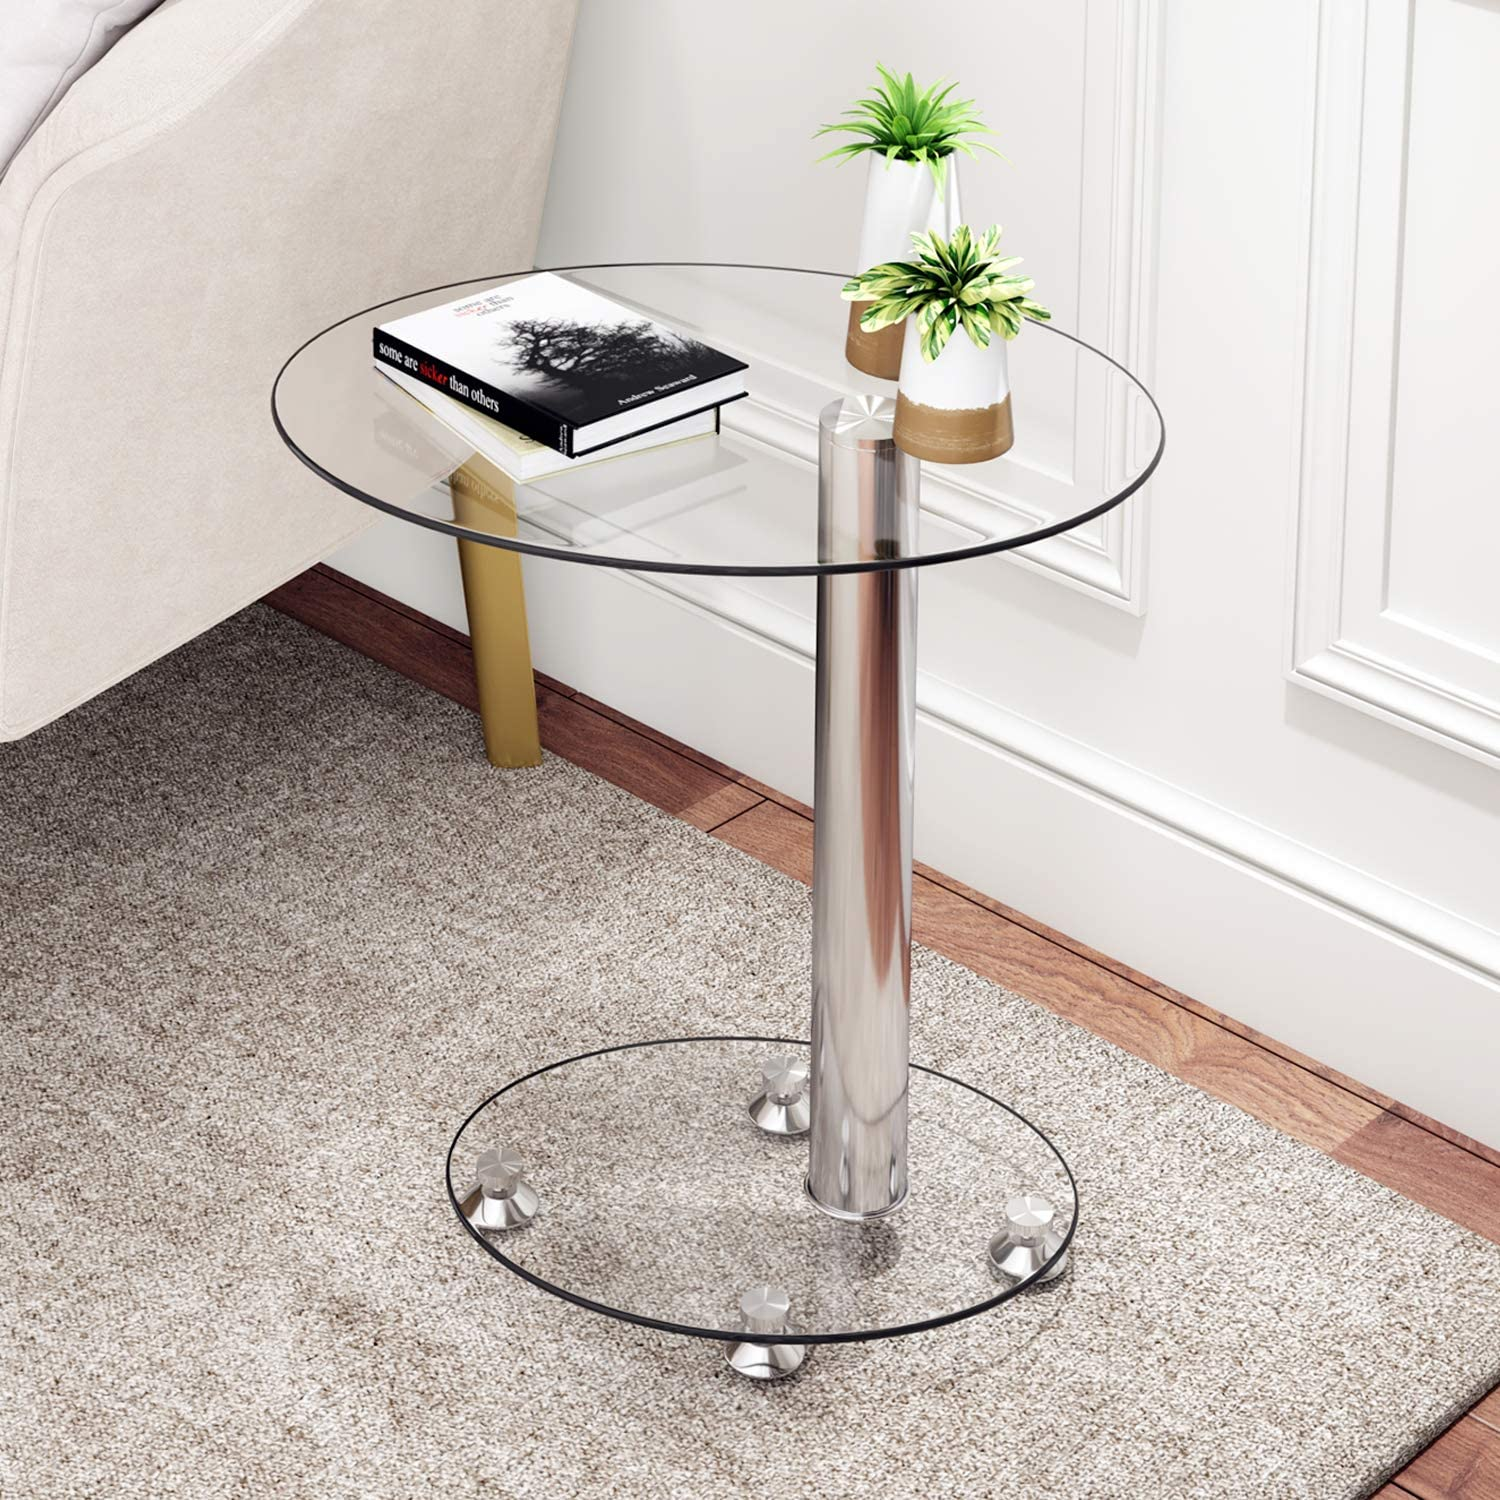 j sofa side table glass end table bedside table for living room bedroom